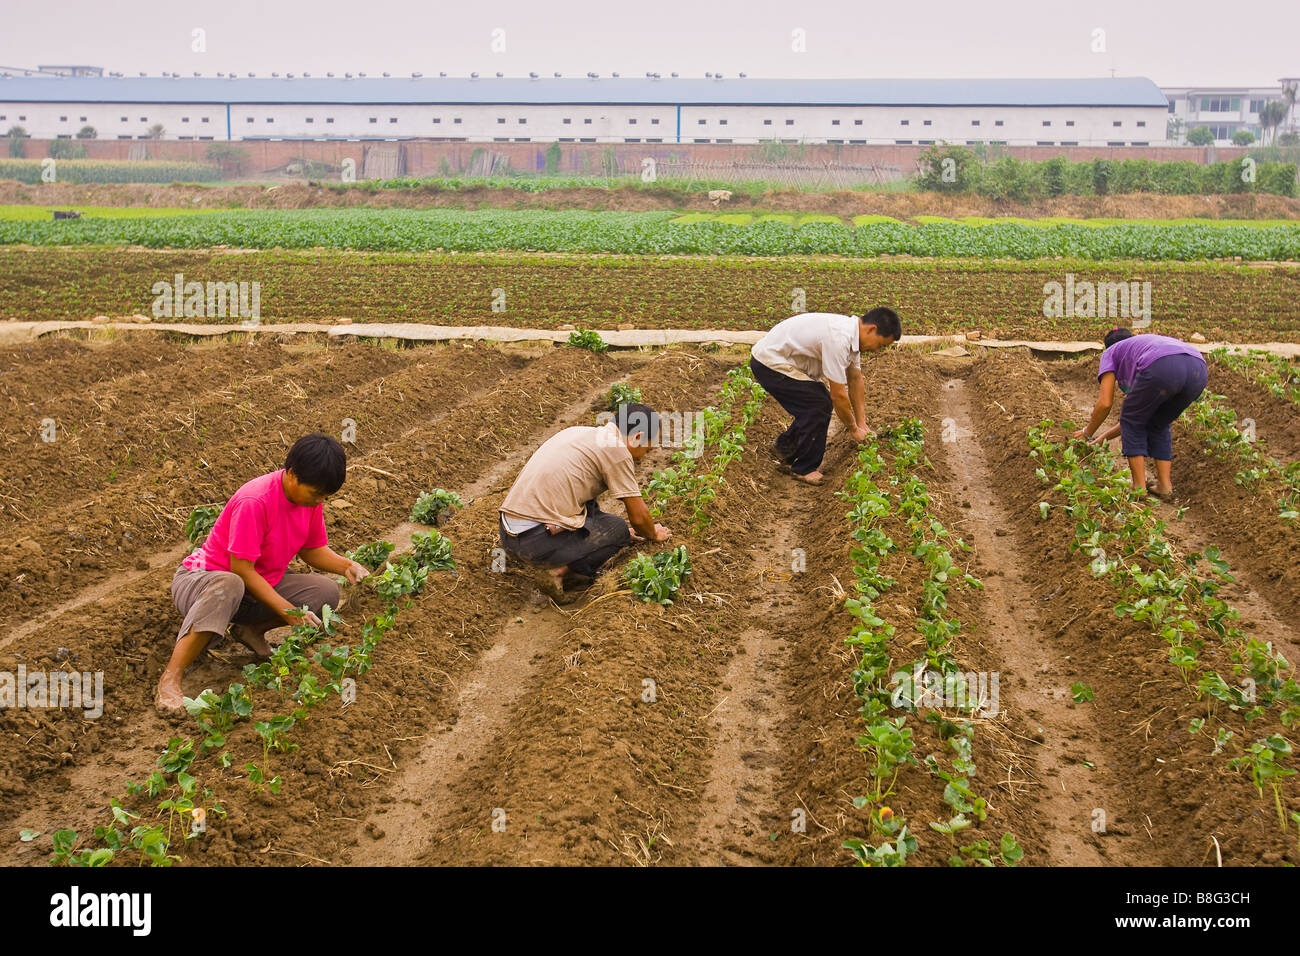 PAN YU, GUANGDONG PROVINCE, CHINA - Four agricultural